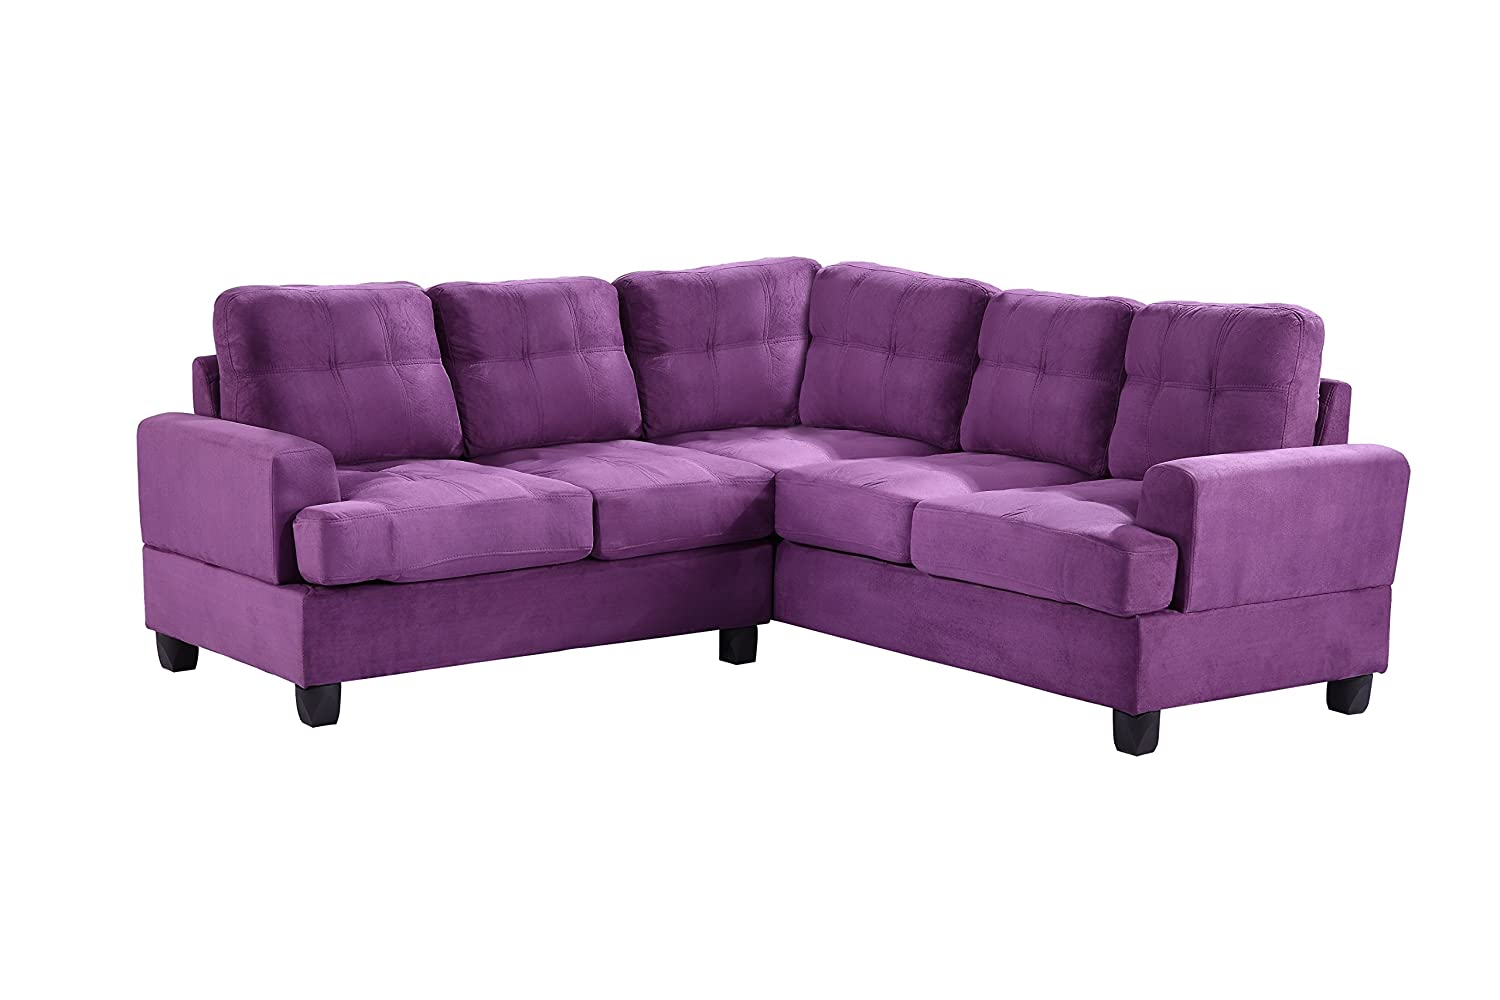 Purple Sectional Sofa For Sale